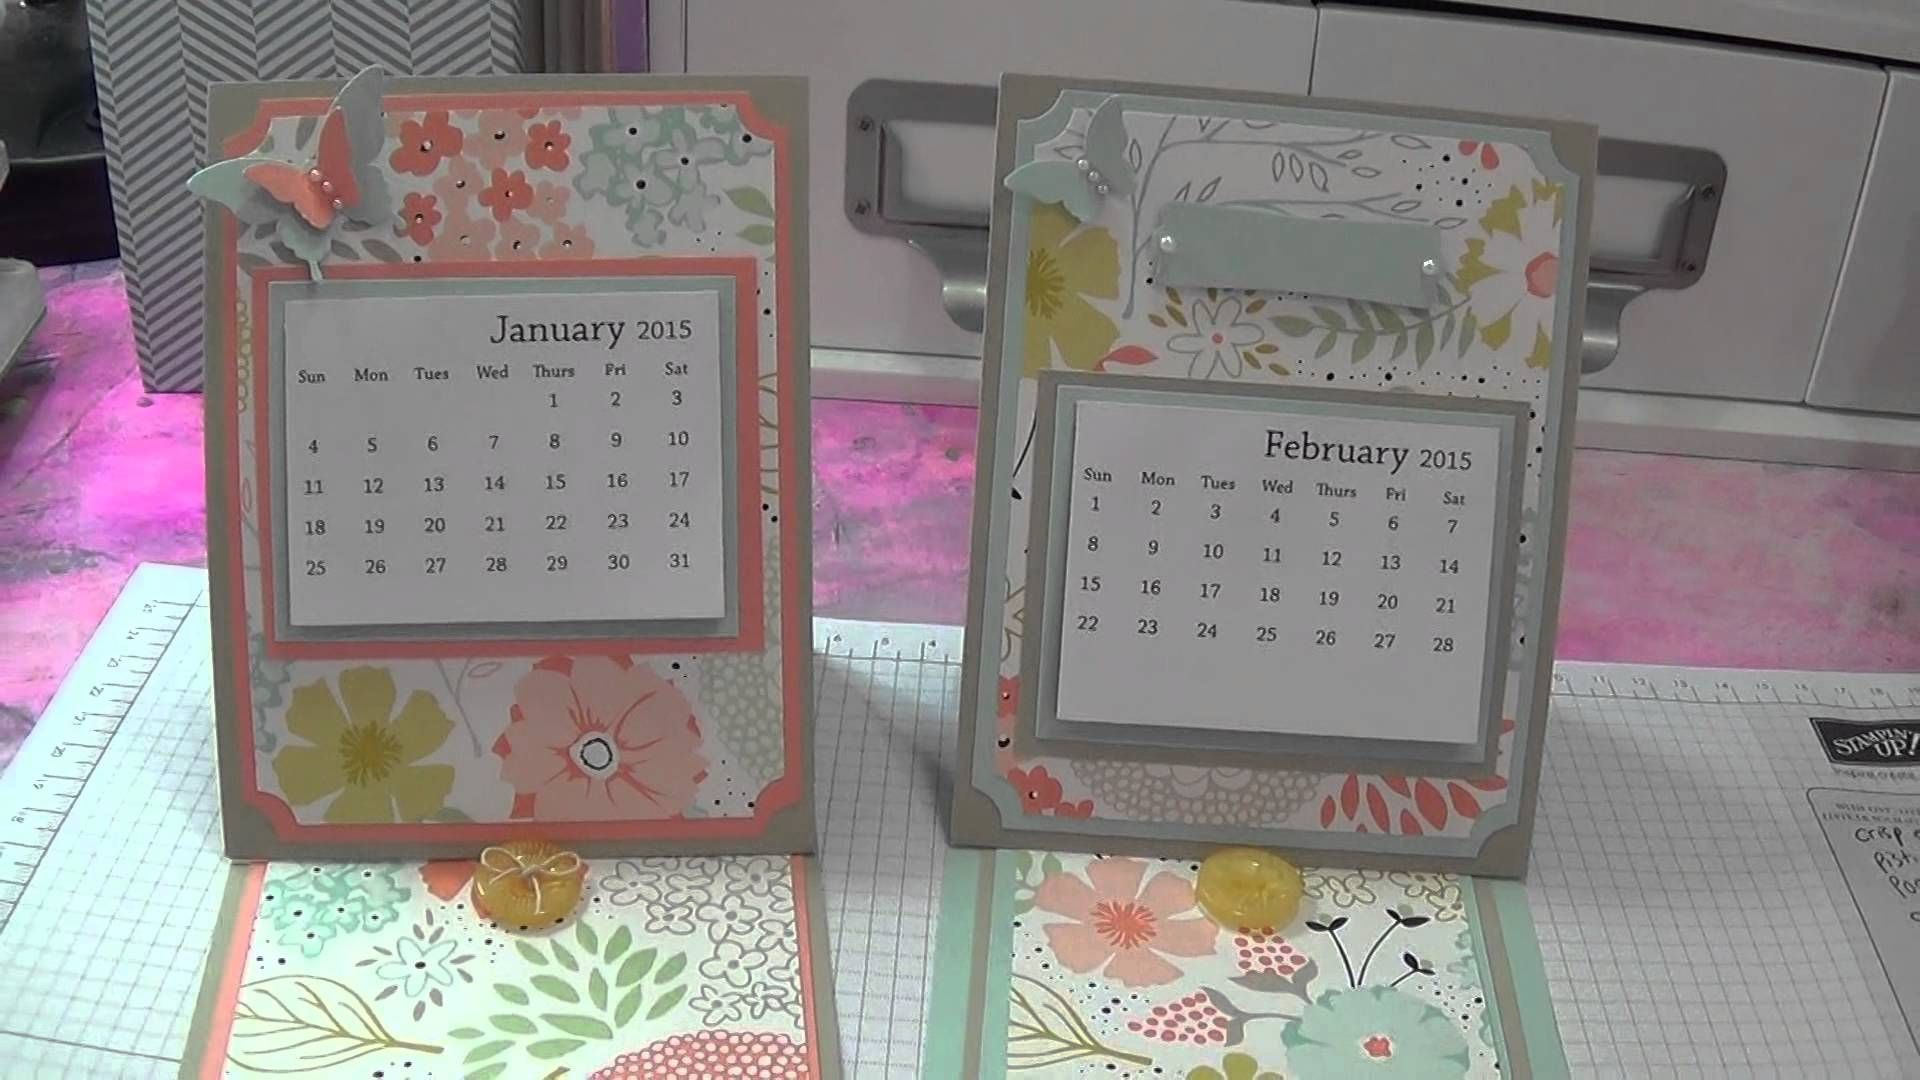 Acalendar Anleitung 2015 calendar/easel card w/stampin' up! products | easel